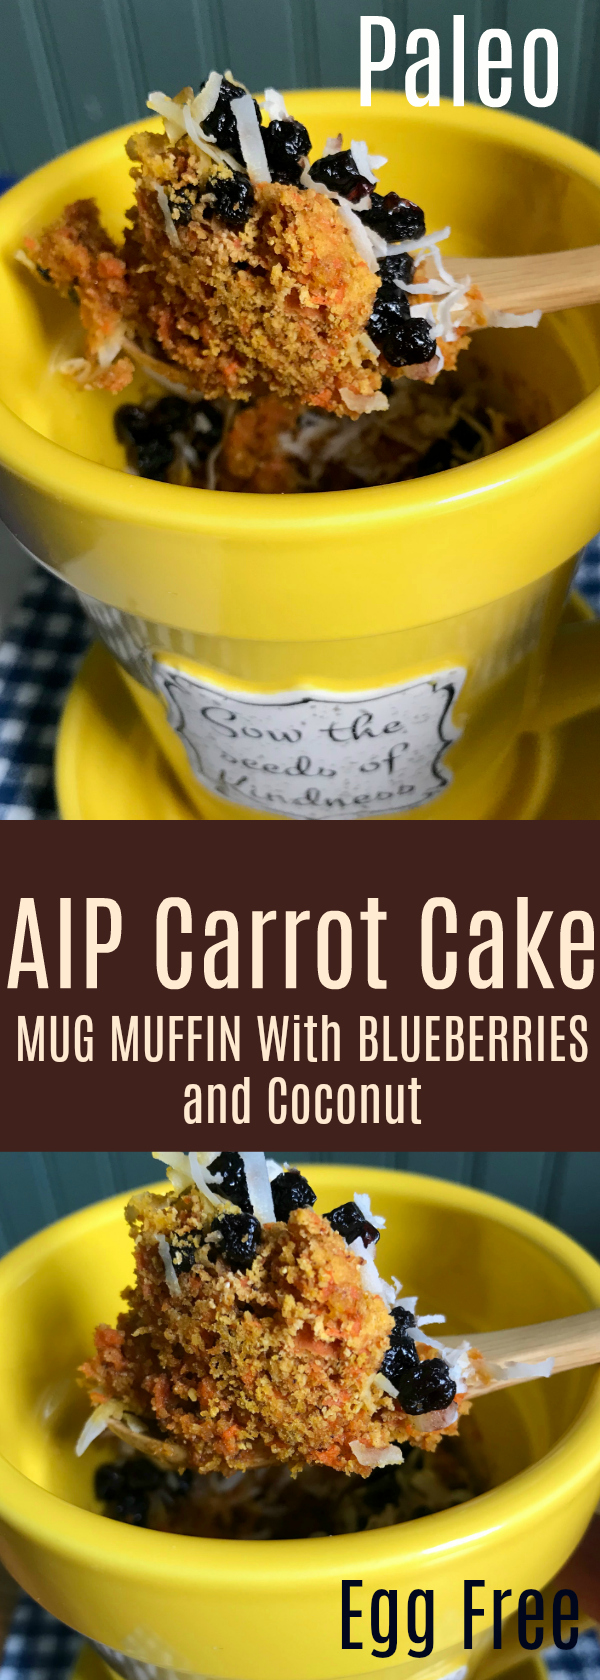 Quick and Easy Microwave Muffin for One. With all the flavor of classic carrot cake, a half cup of carrots are in this muffin along with delicious dried blueberries and shredded coconut!